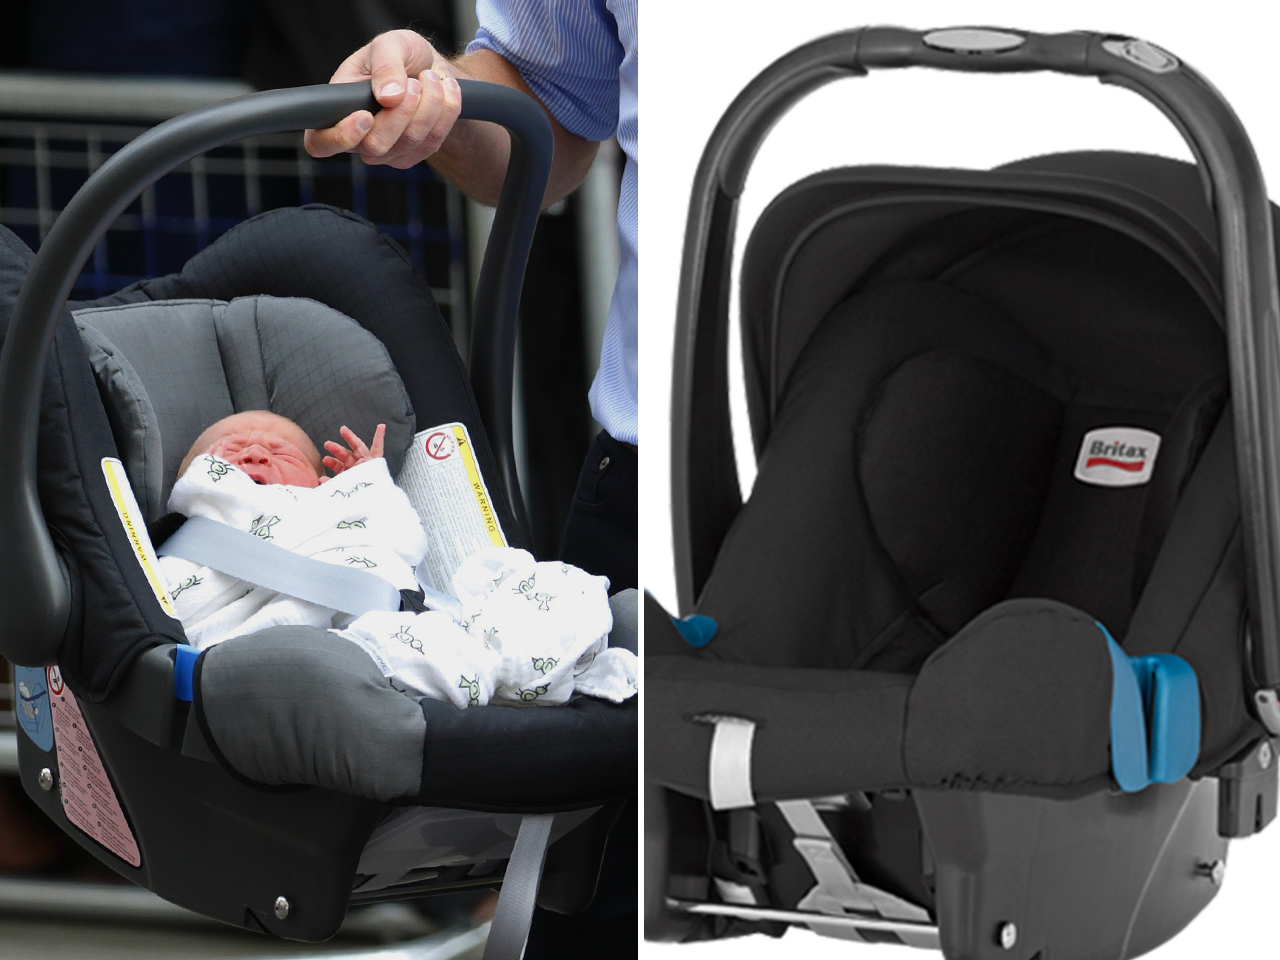 Trendsetting tot: Buyers scoop up car seat, blanket fit for a prince